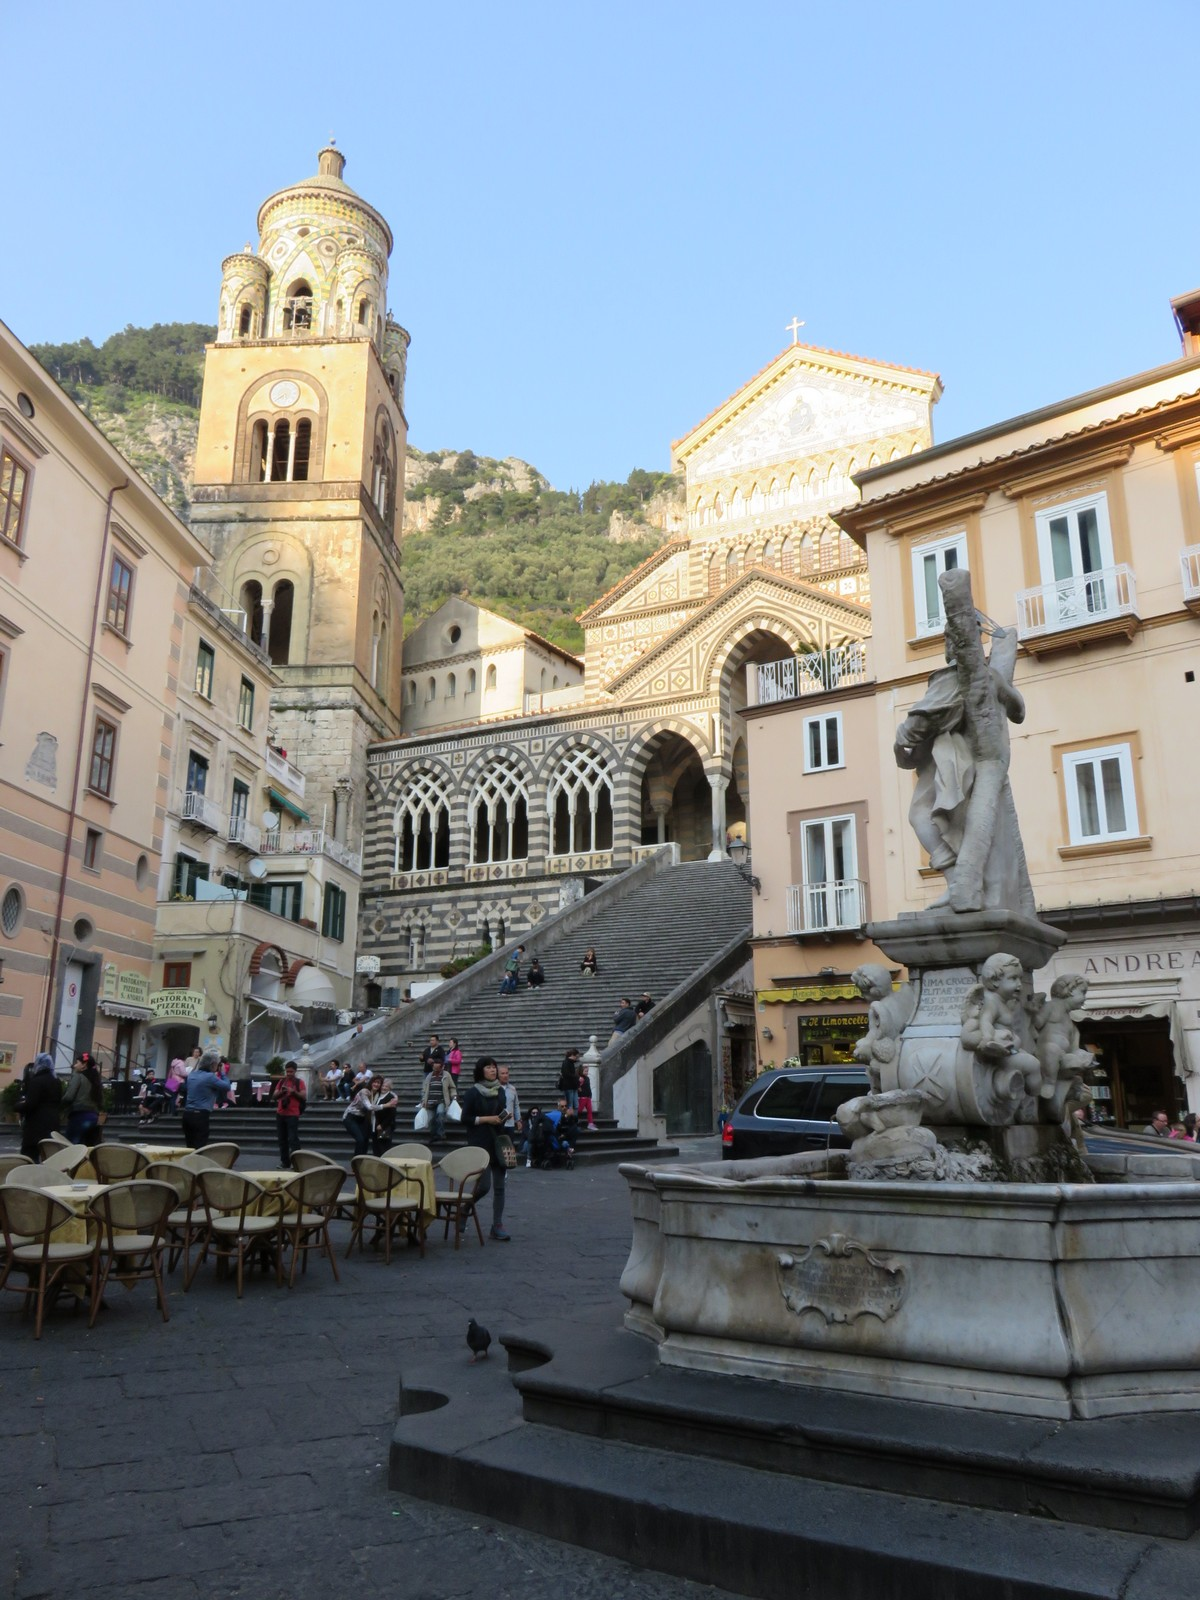 The beautiful Amalfi church and piazza